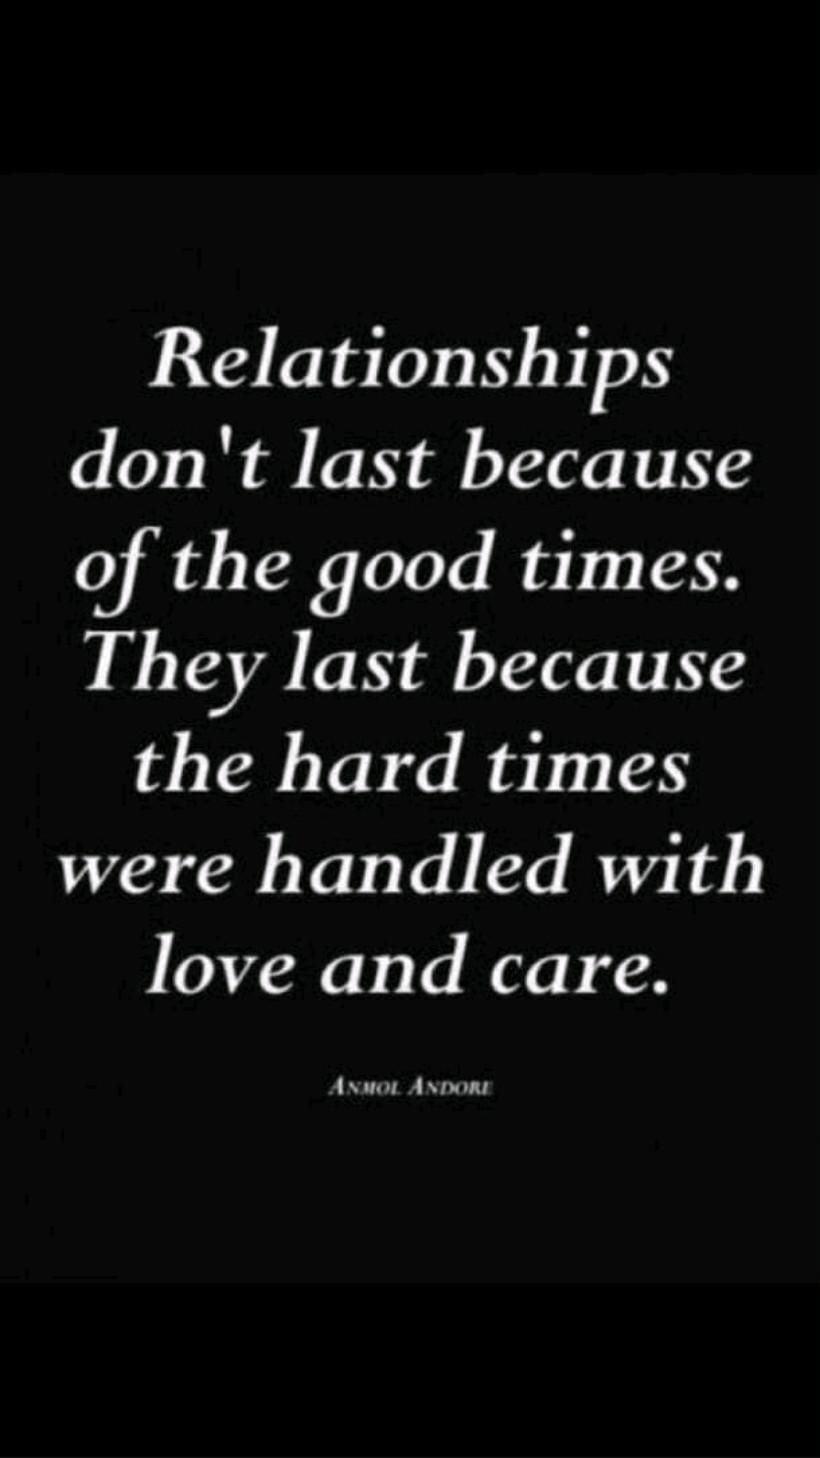 Relationship don't last because of the good times..